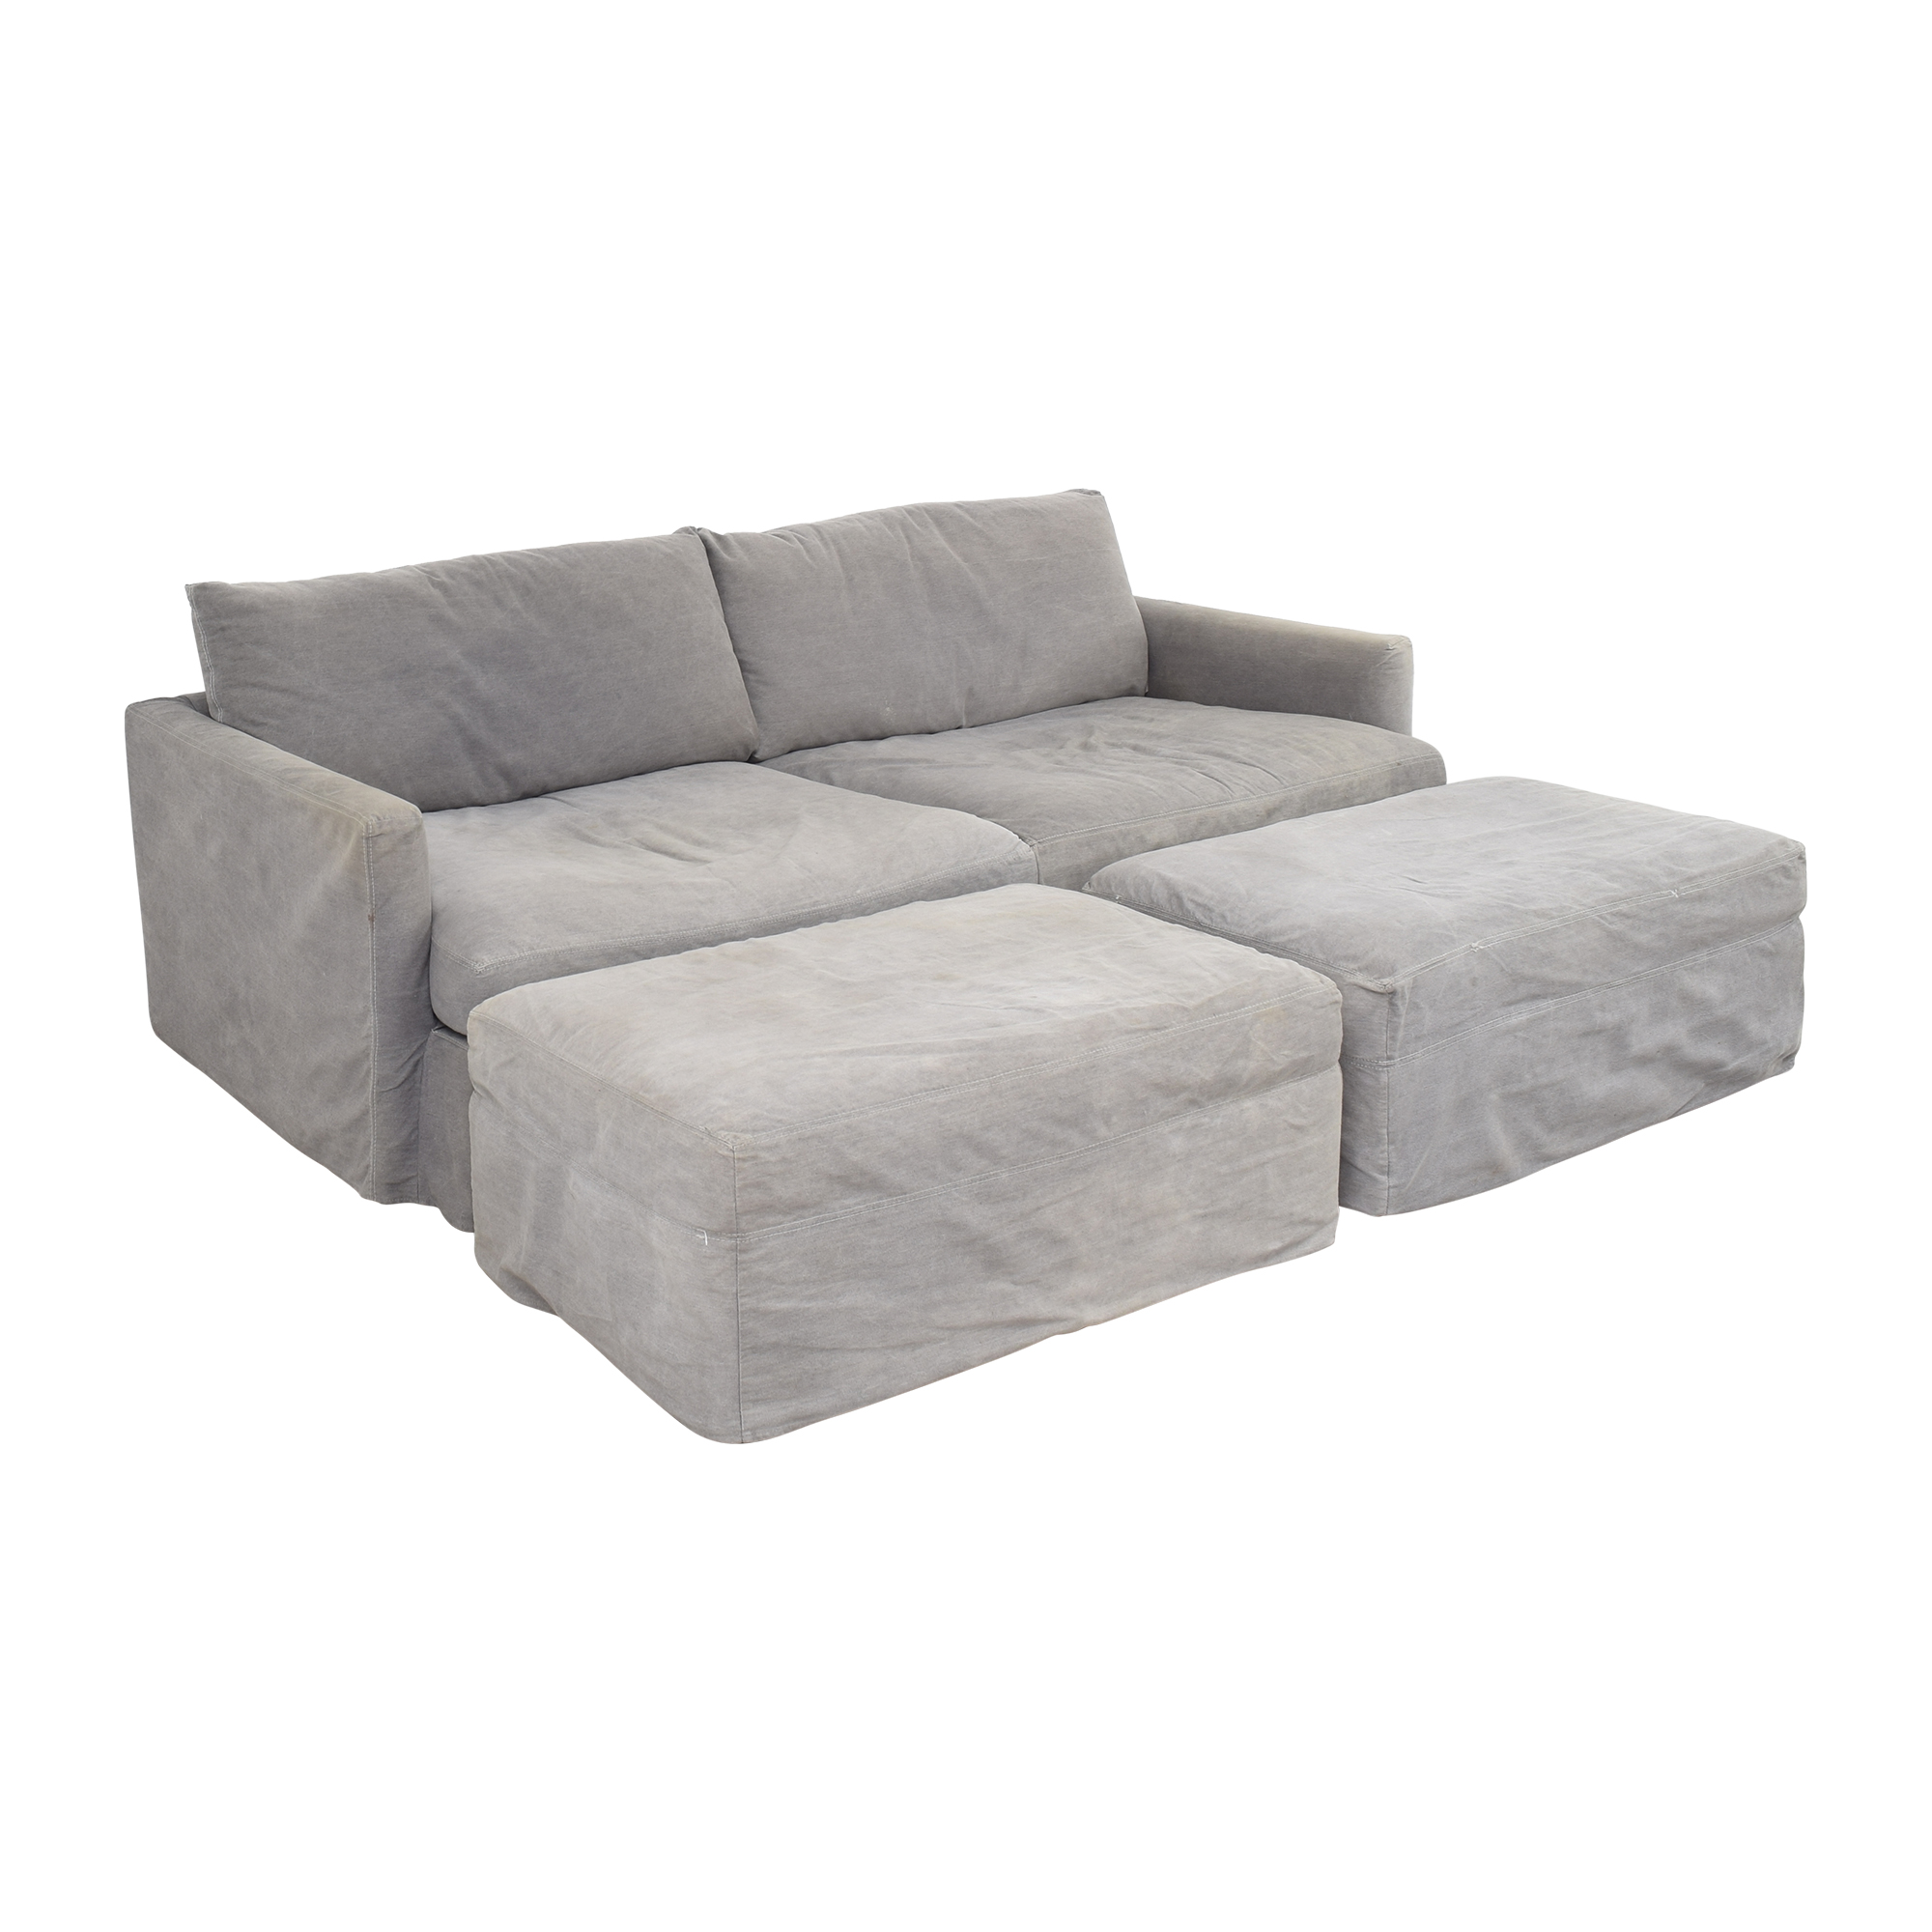 Crate & Barrel Lounge II Sofa with Two Ottomans on Casters / Sofas